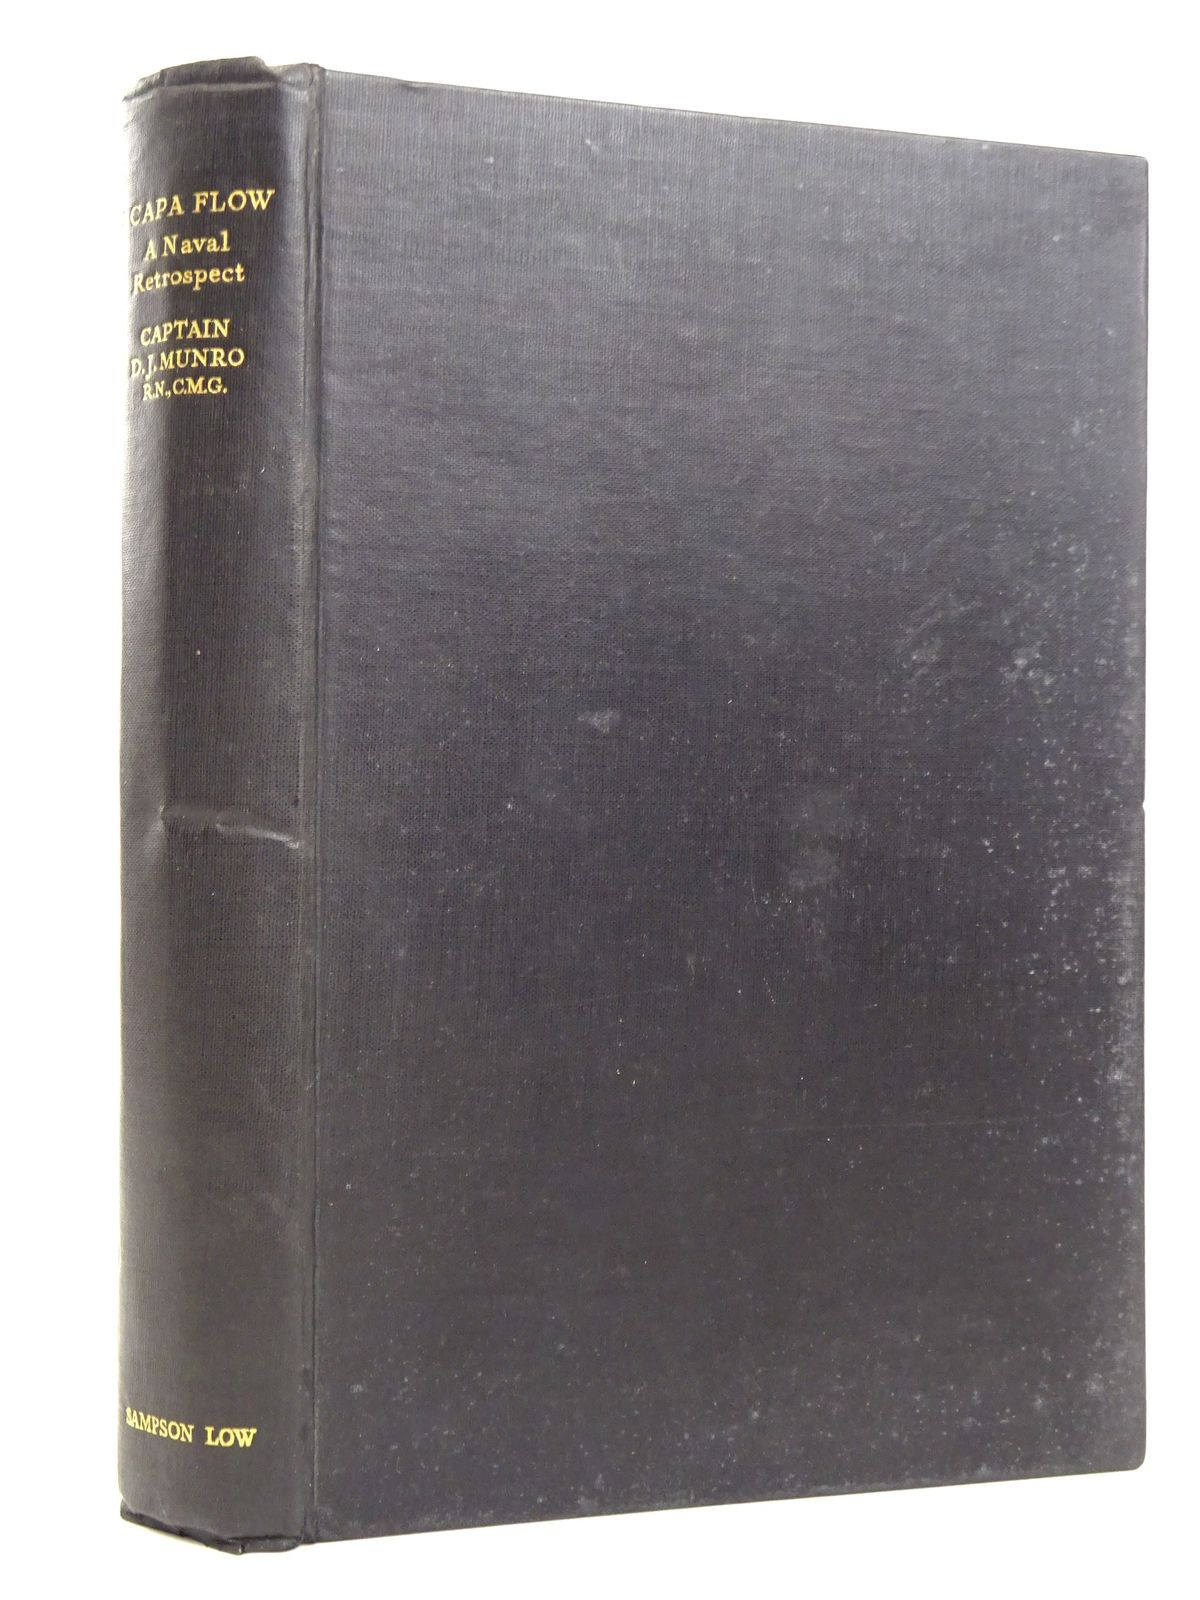 Photo of SCAPA FLOW: A NAVAL RETROSPECT written by Munro, Captain Donald J. published by Sampson Low, Marston & Co. Ltd. (STOCK CODE: 1818291)  for sale by Stella & Rose's Books